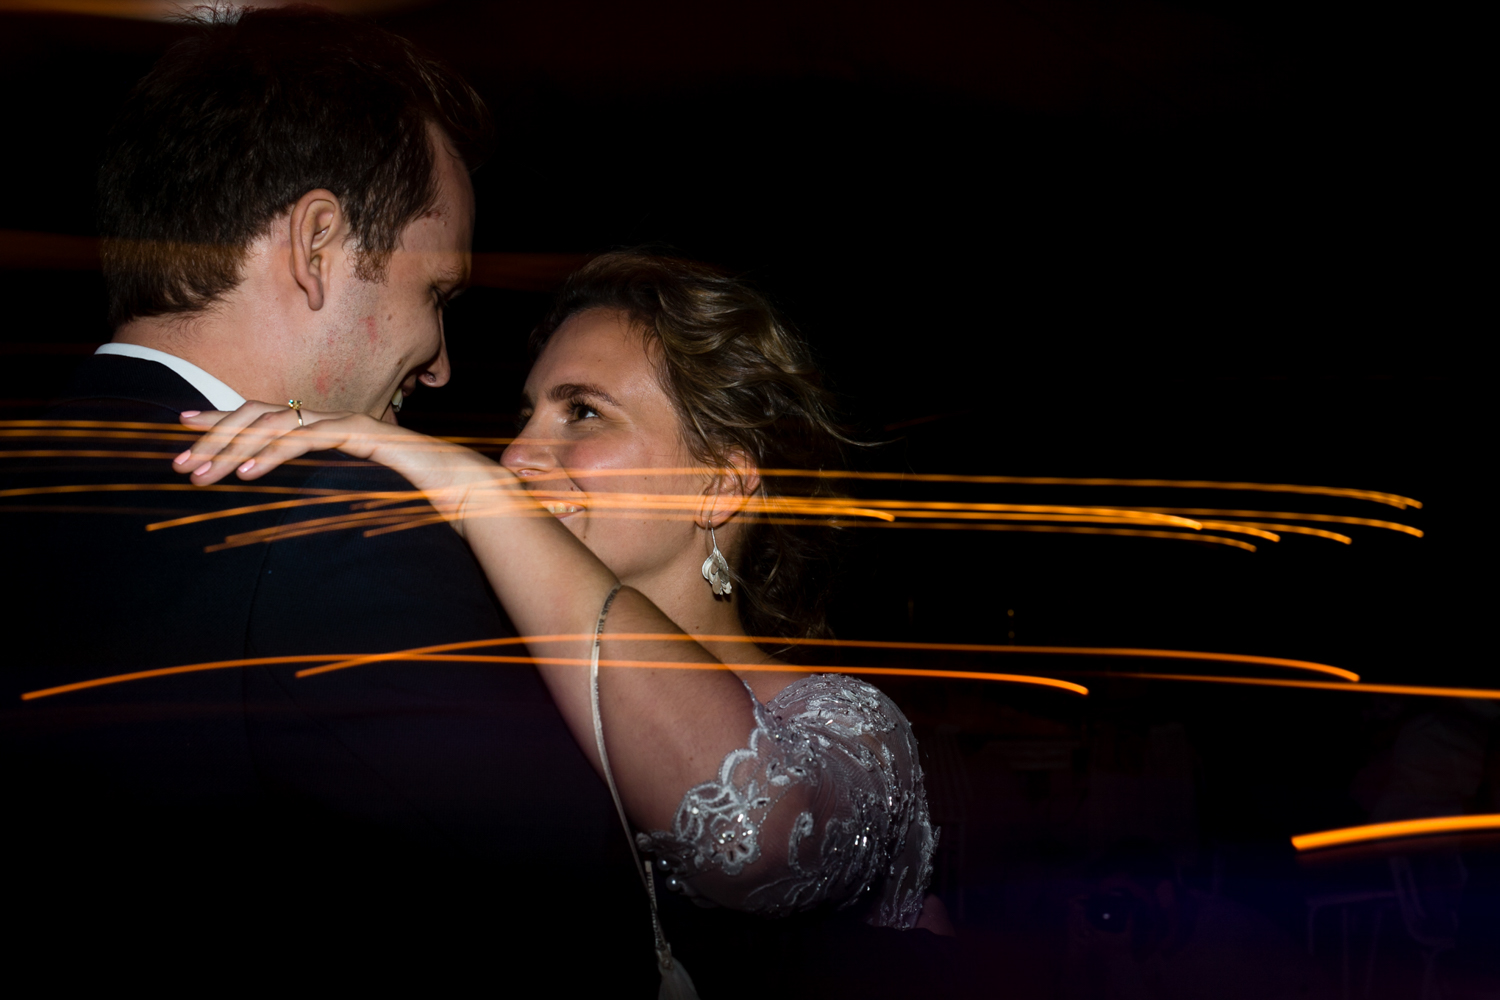 heisvisual-wedding-photographers-documentary-stellenbosch-south-africa032.jpg